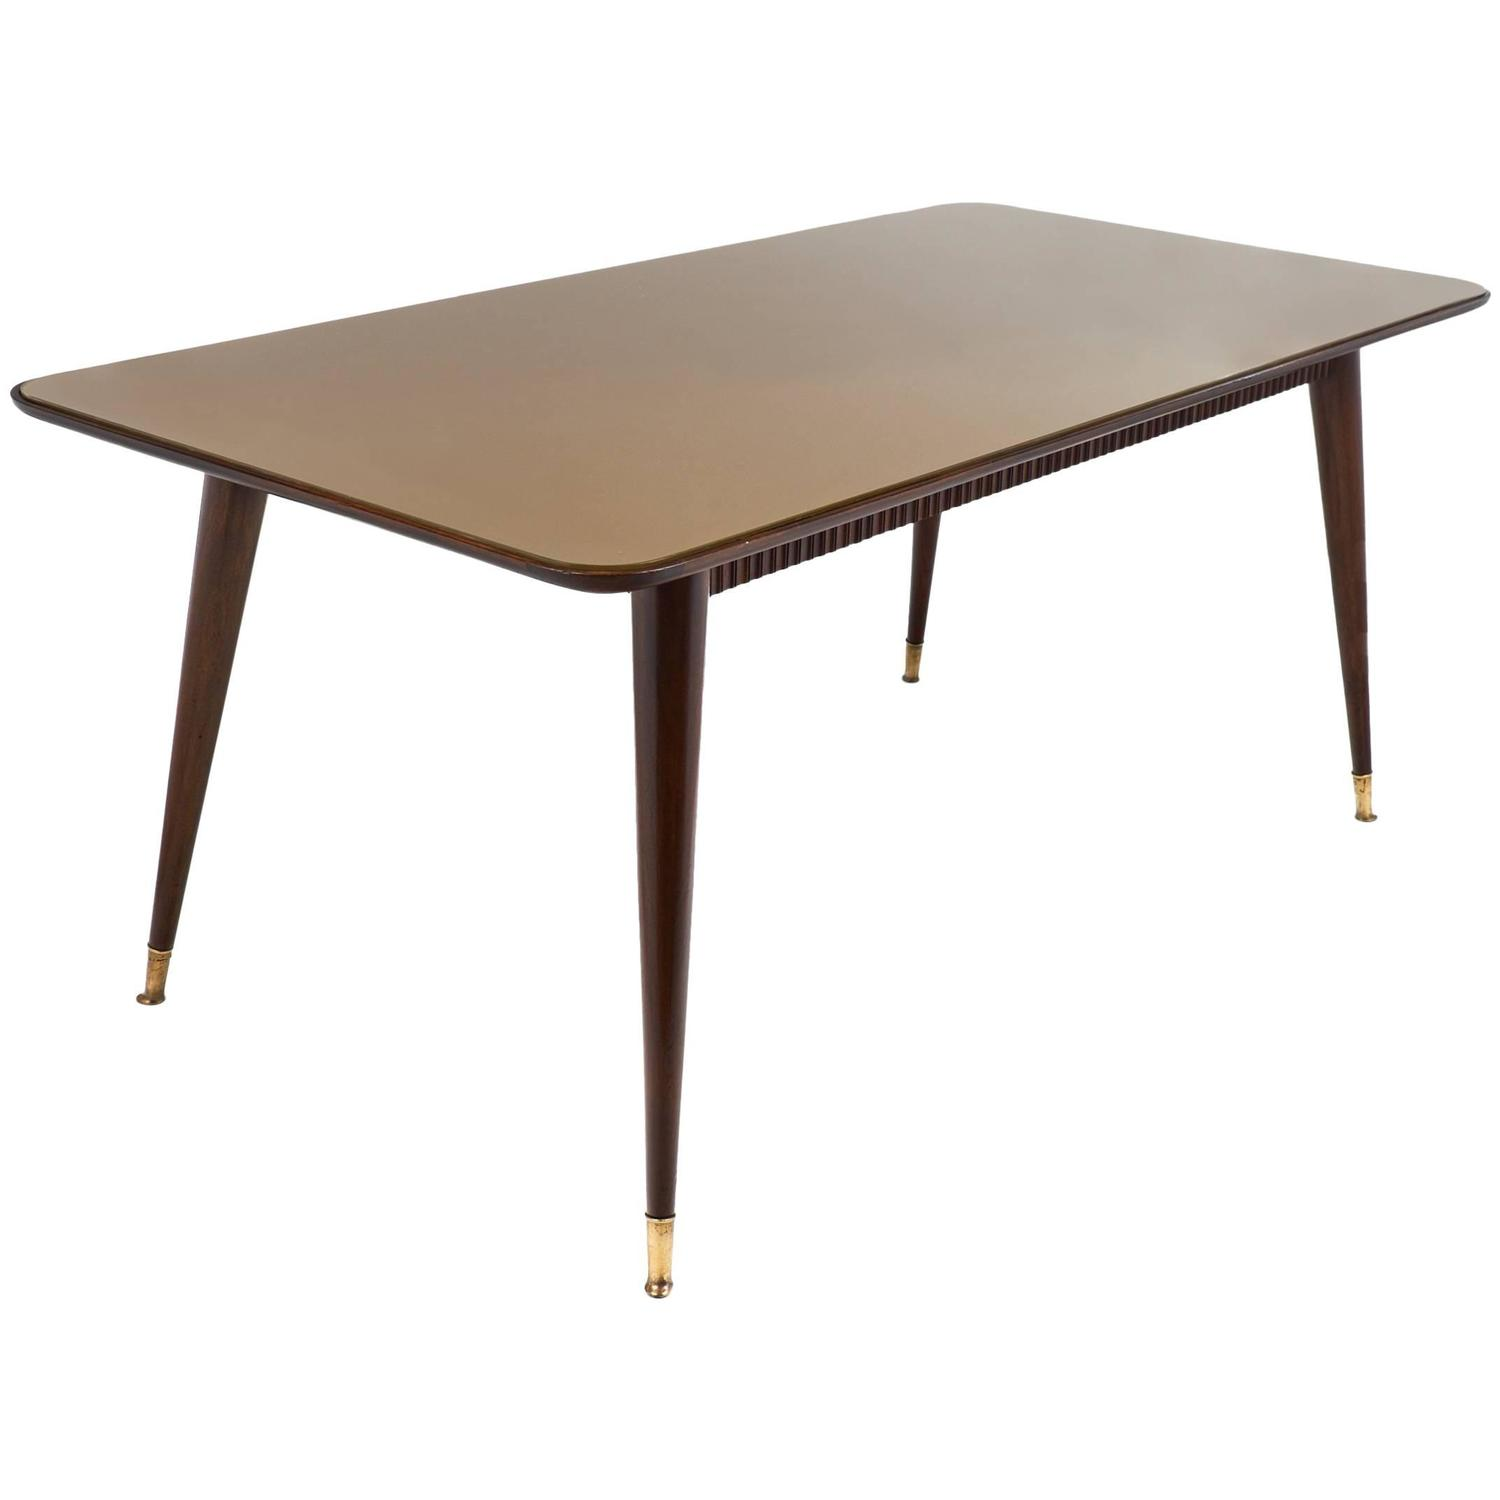 Mid century modern italian dining room table for sale at for Modern dining tables sale